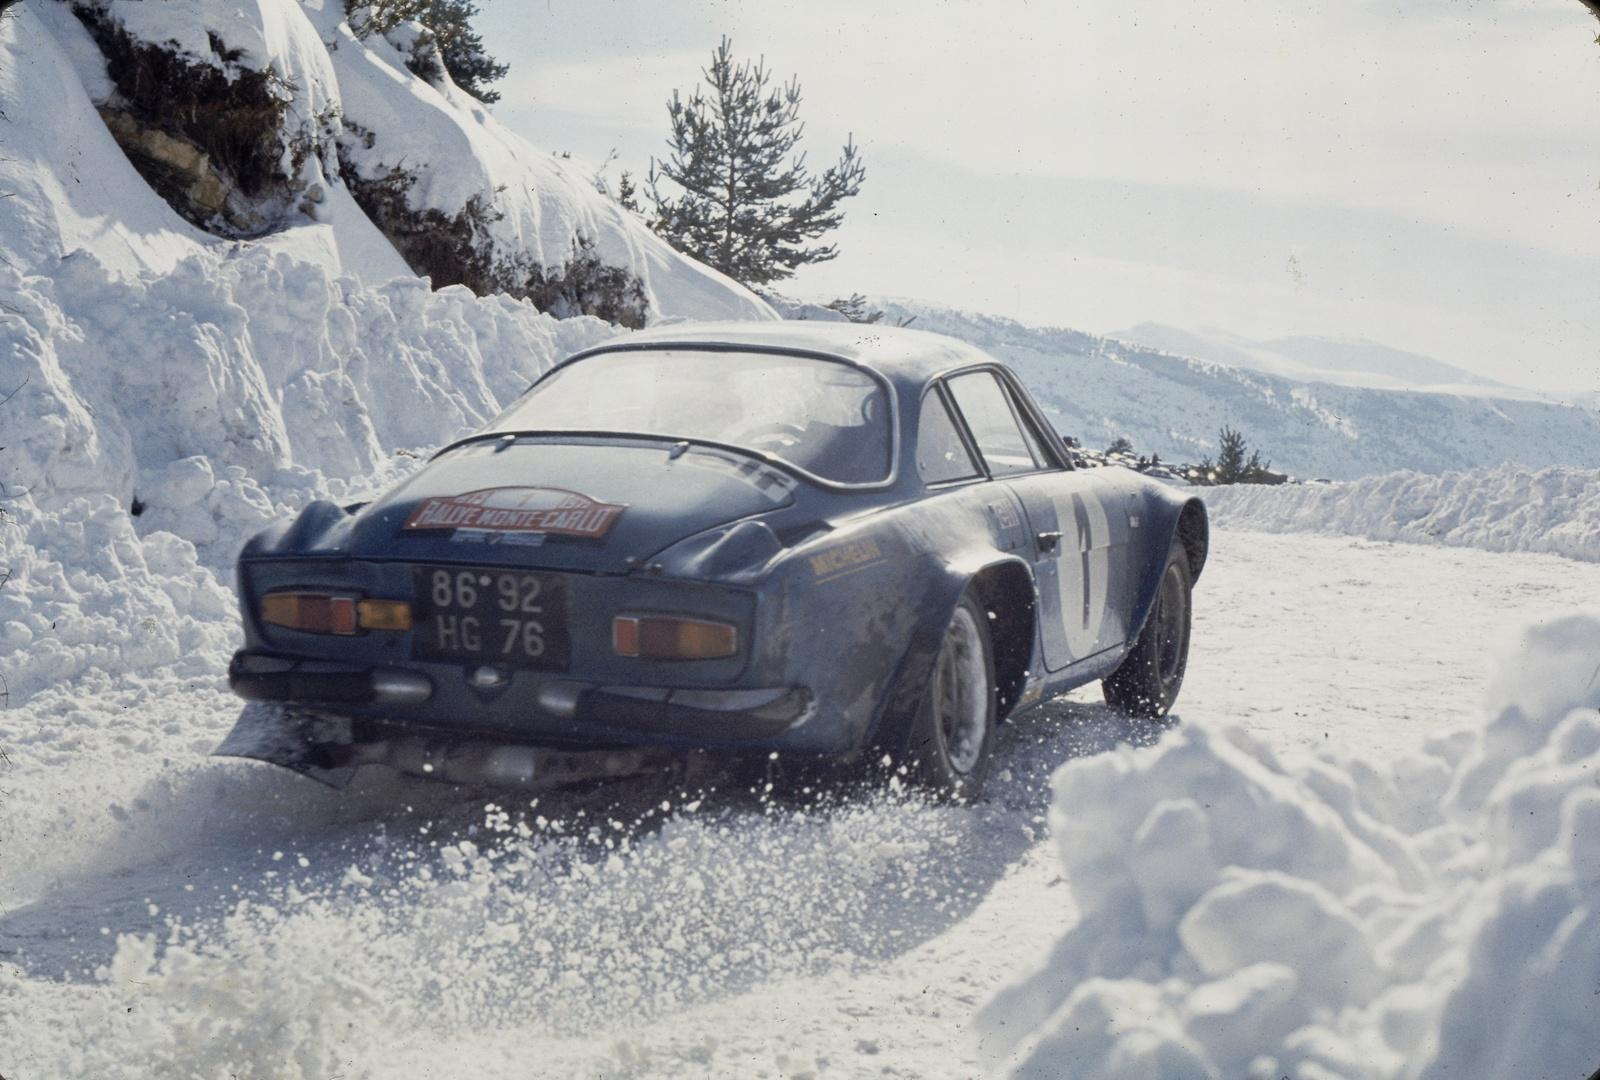 When the Alpine A110 ruled the world